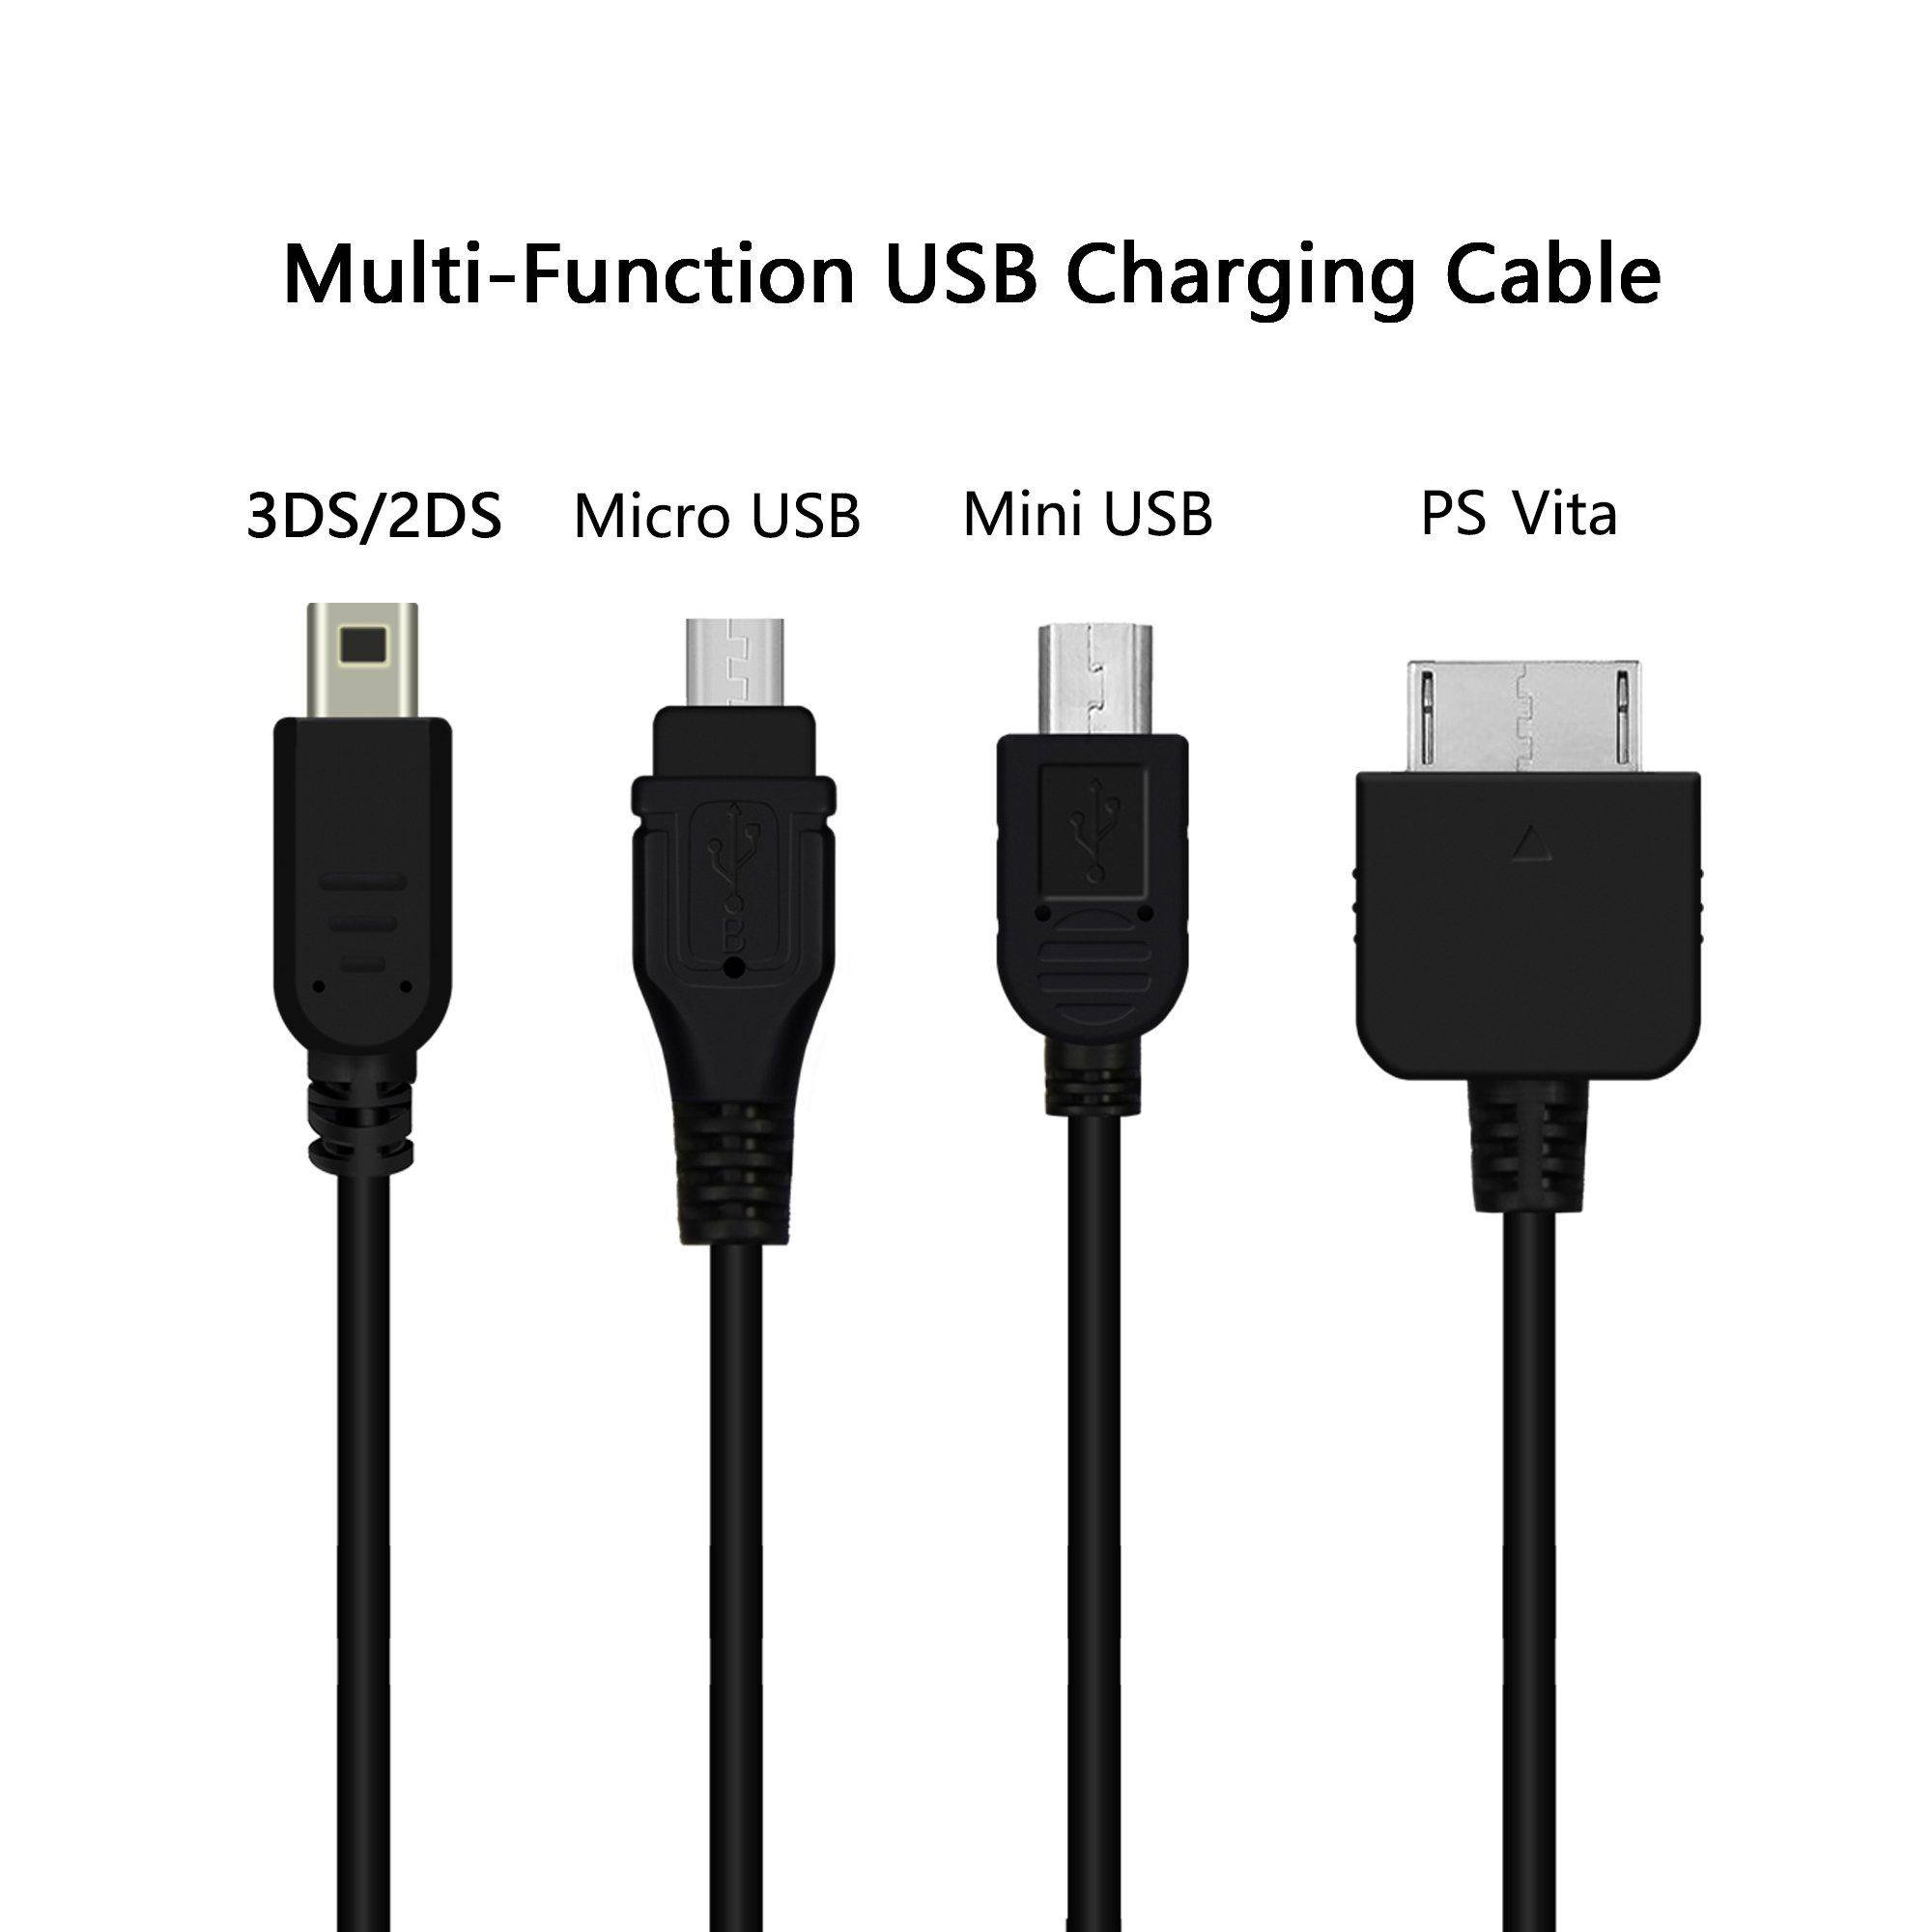 Usb Multi Charger Cable 3 8ft For Ps Vita Nintendo New 2ds Xl 3ds 2ds Dsi Xl Multiple Charging Cord With Micr Multi Charger Micro Usb Xbox One Controller